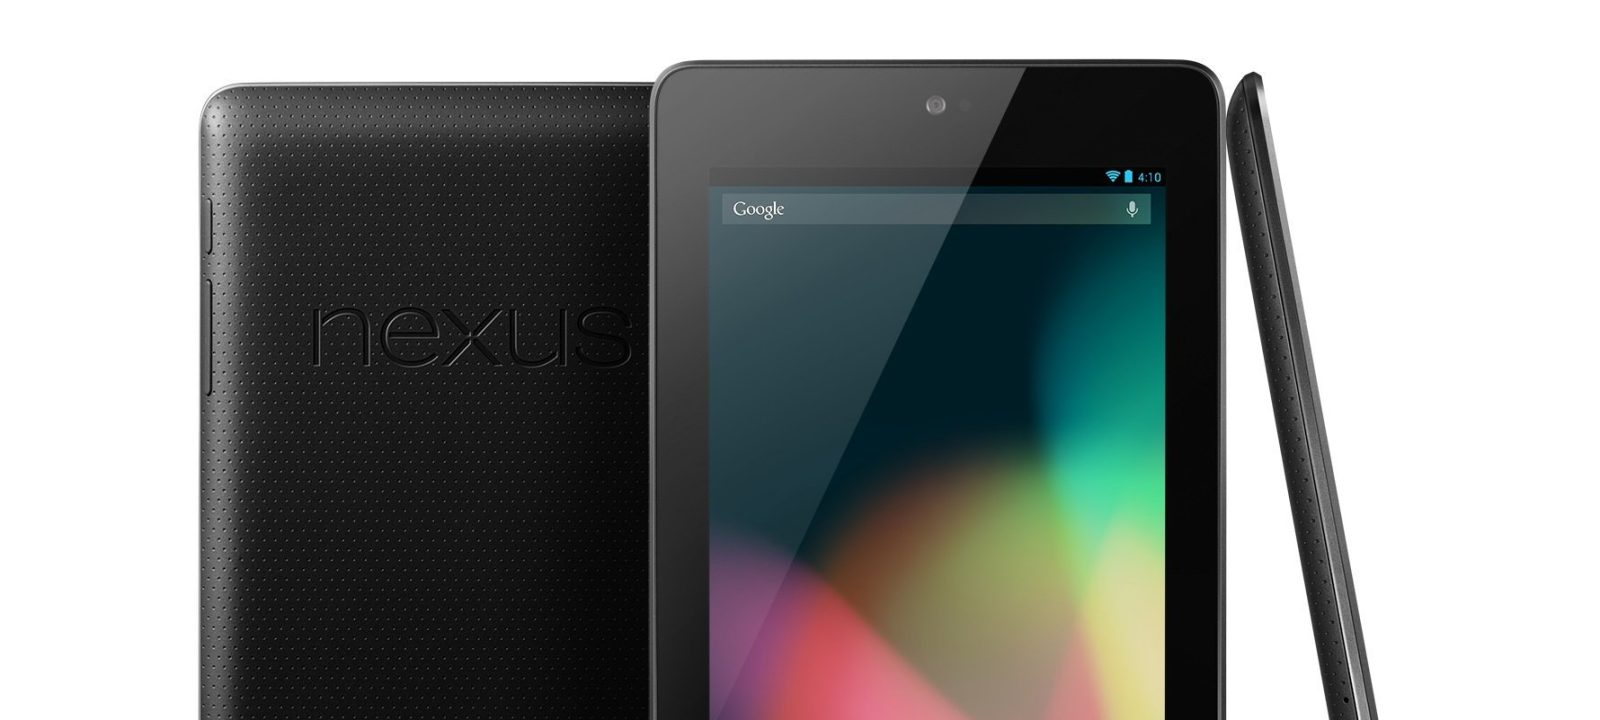 Hacked Android Marshmallow Build Available For Nexus 7 2012 Here S How To Install It 9to5google